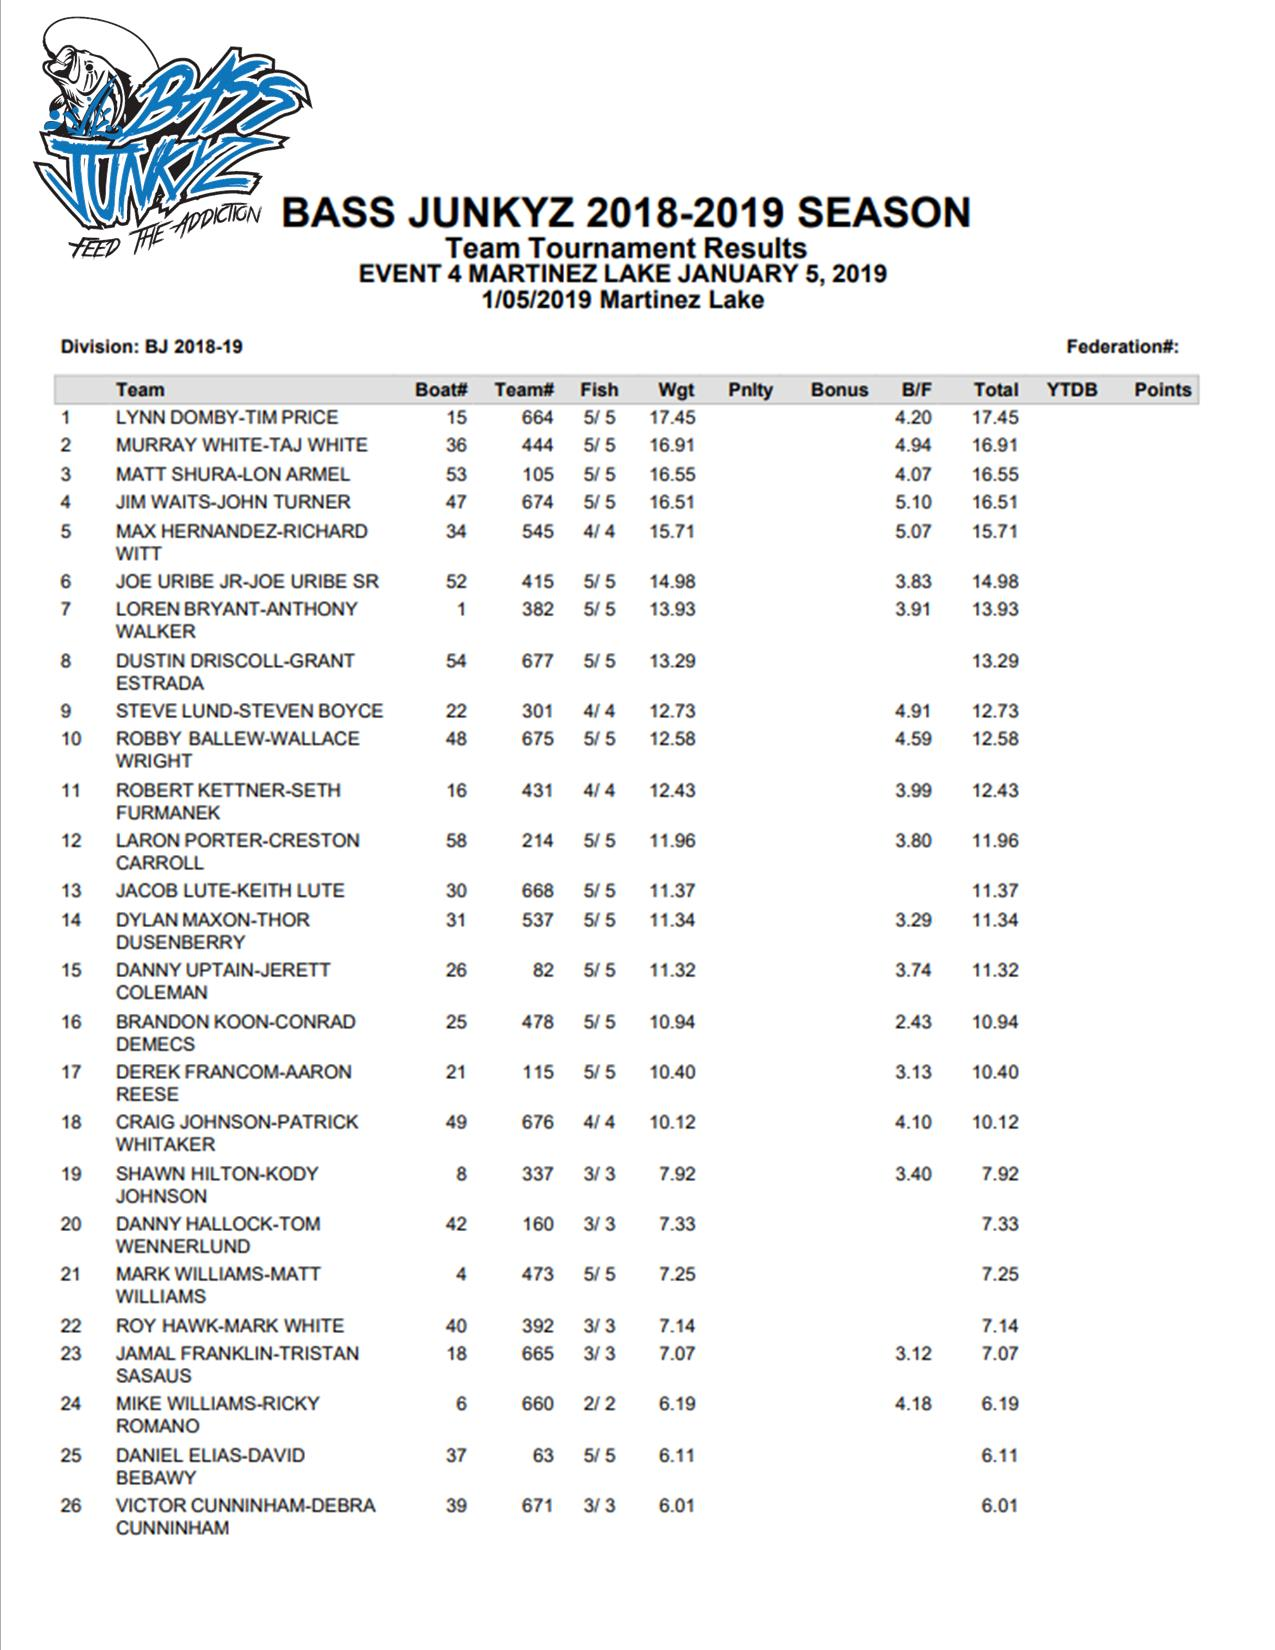 EVENT 4 MARTINEZ RESULTS PAGE 1.jpg